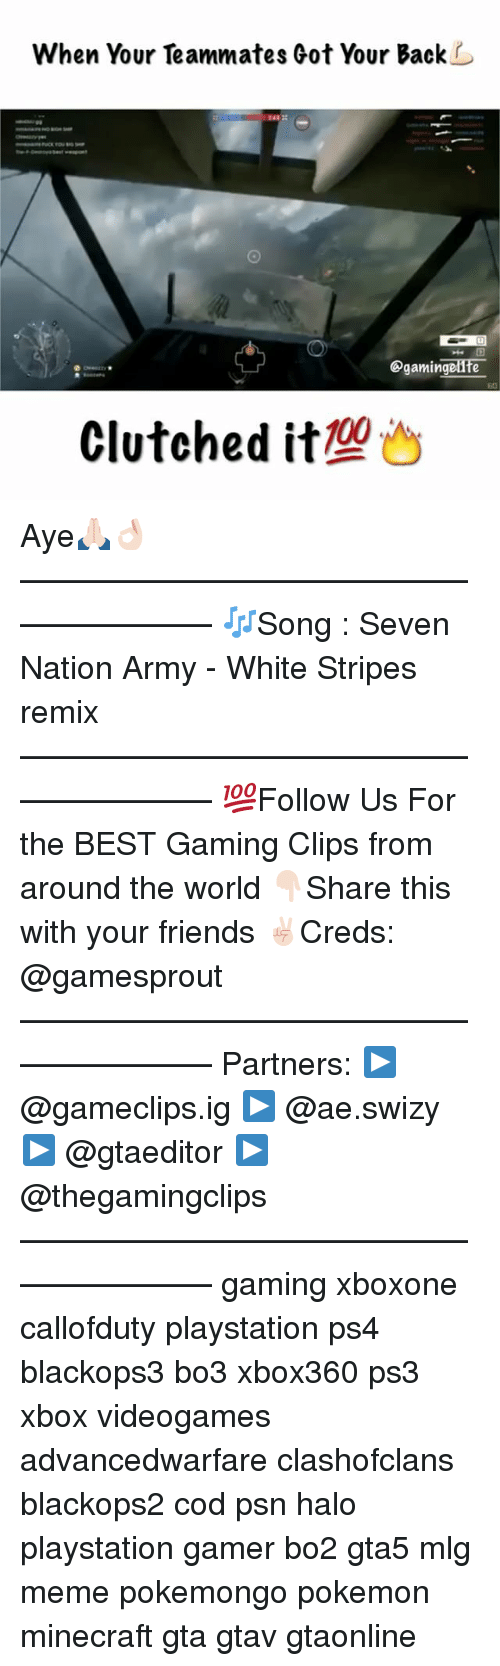 white stripes: When Your Teammates Got Your Back  Ogamingenfe  00  Clutched it Aye🙏🏻👌🏻———————————————————— 🎶Song : Seven Nation Army - White Stripes remix ———————————————————— 💯Follow Us For the BEST Gaming Clips from around the world 👇🏻Share this with your friends ✌🏻️Creds: @gamesprout ———————————————————— Partners: ▶️ @gameclips.ig ▶️ @ae.swizy ▶️ @gtaeditor ️▶️ @thegamingclips ———————————————————— gaming xboxone callofduty playstation ps4 blackops3 bo3 xbox360 ps3 xbox videogames advancedwarfare clashofclans blackops2 cod psn halo playstation gamer bo2 gta5 mlg meme pokemongo pokemon minecraft gta gtav gtaonline